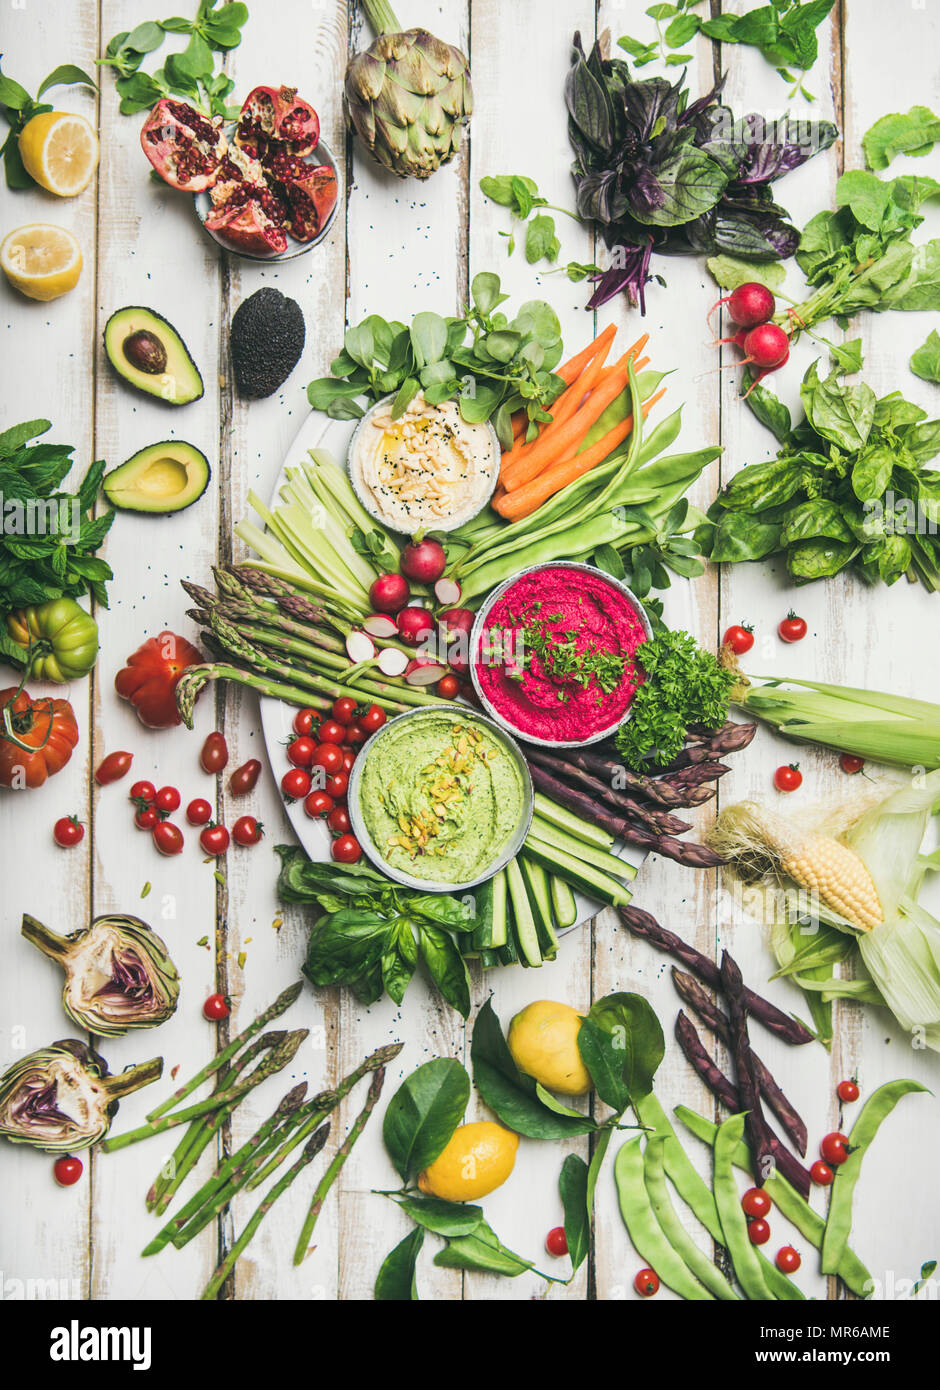 Healthy raw summer vegan snack plate. Flat-lay of chickpea, beetroot and spinach humus dips with colorful fresh vegetables and greens on white table b - Stock Image